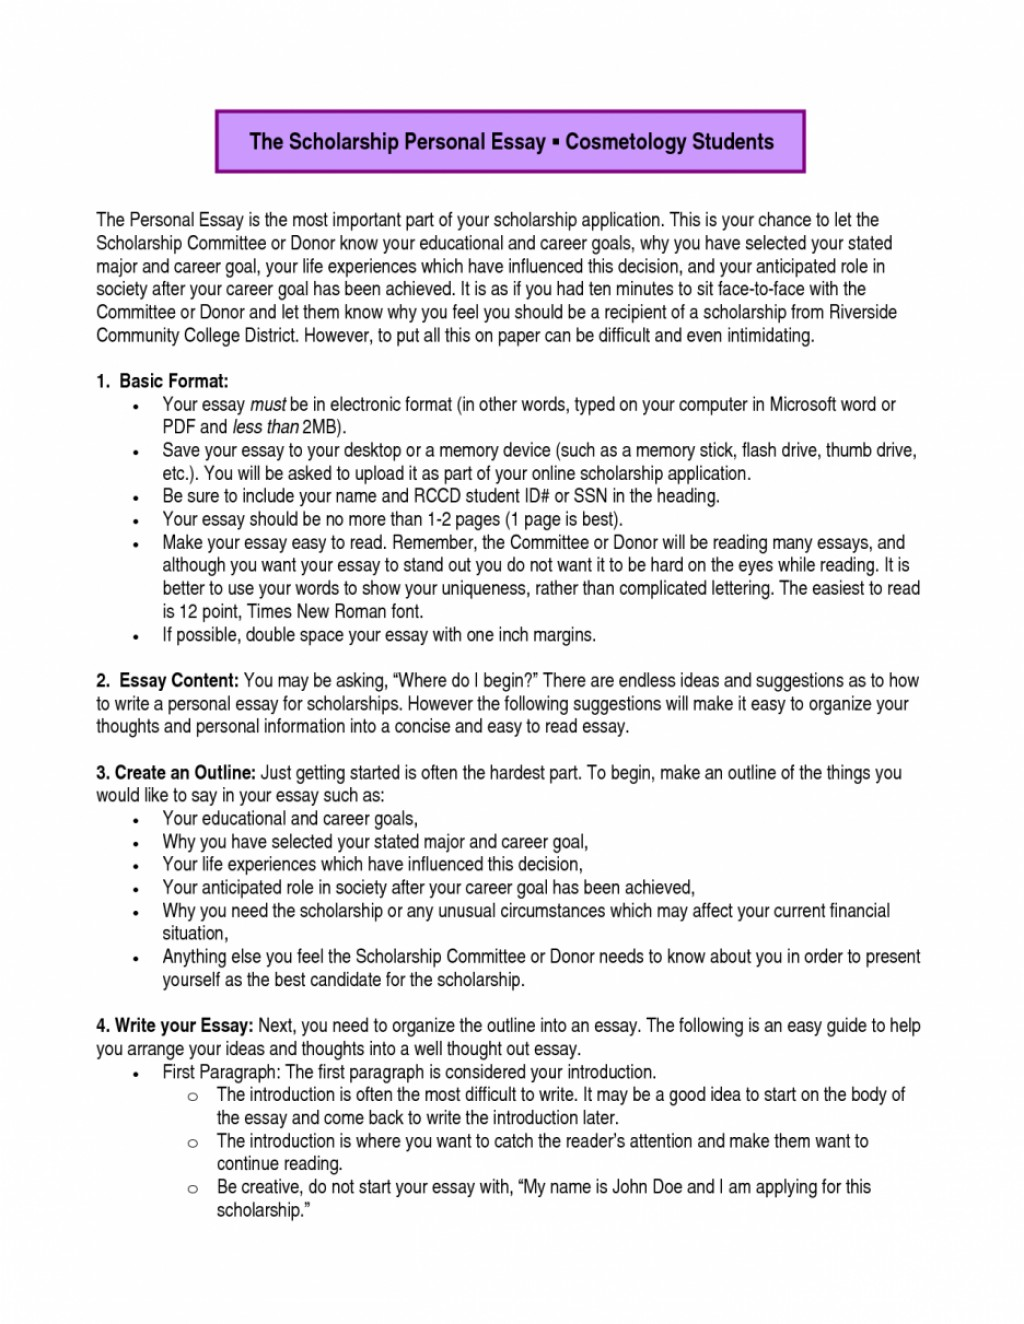 024 Personal Goals Essay Goal Essays Career And Educational Examples Academic Sample Paper Nursing Professional My Setting Smart Life Values About Future Achieving For College Amazing Mba High School Large